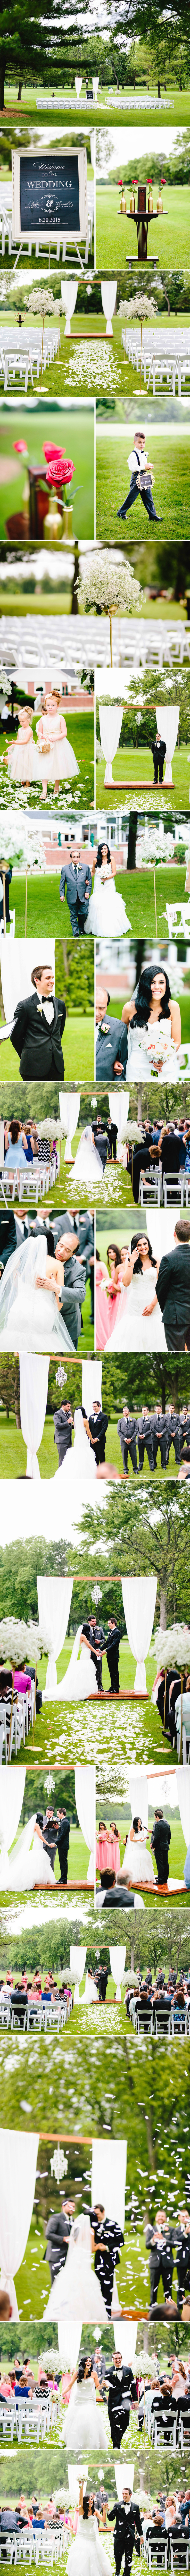 chicago-fine-art-wedding-photography-keele5